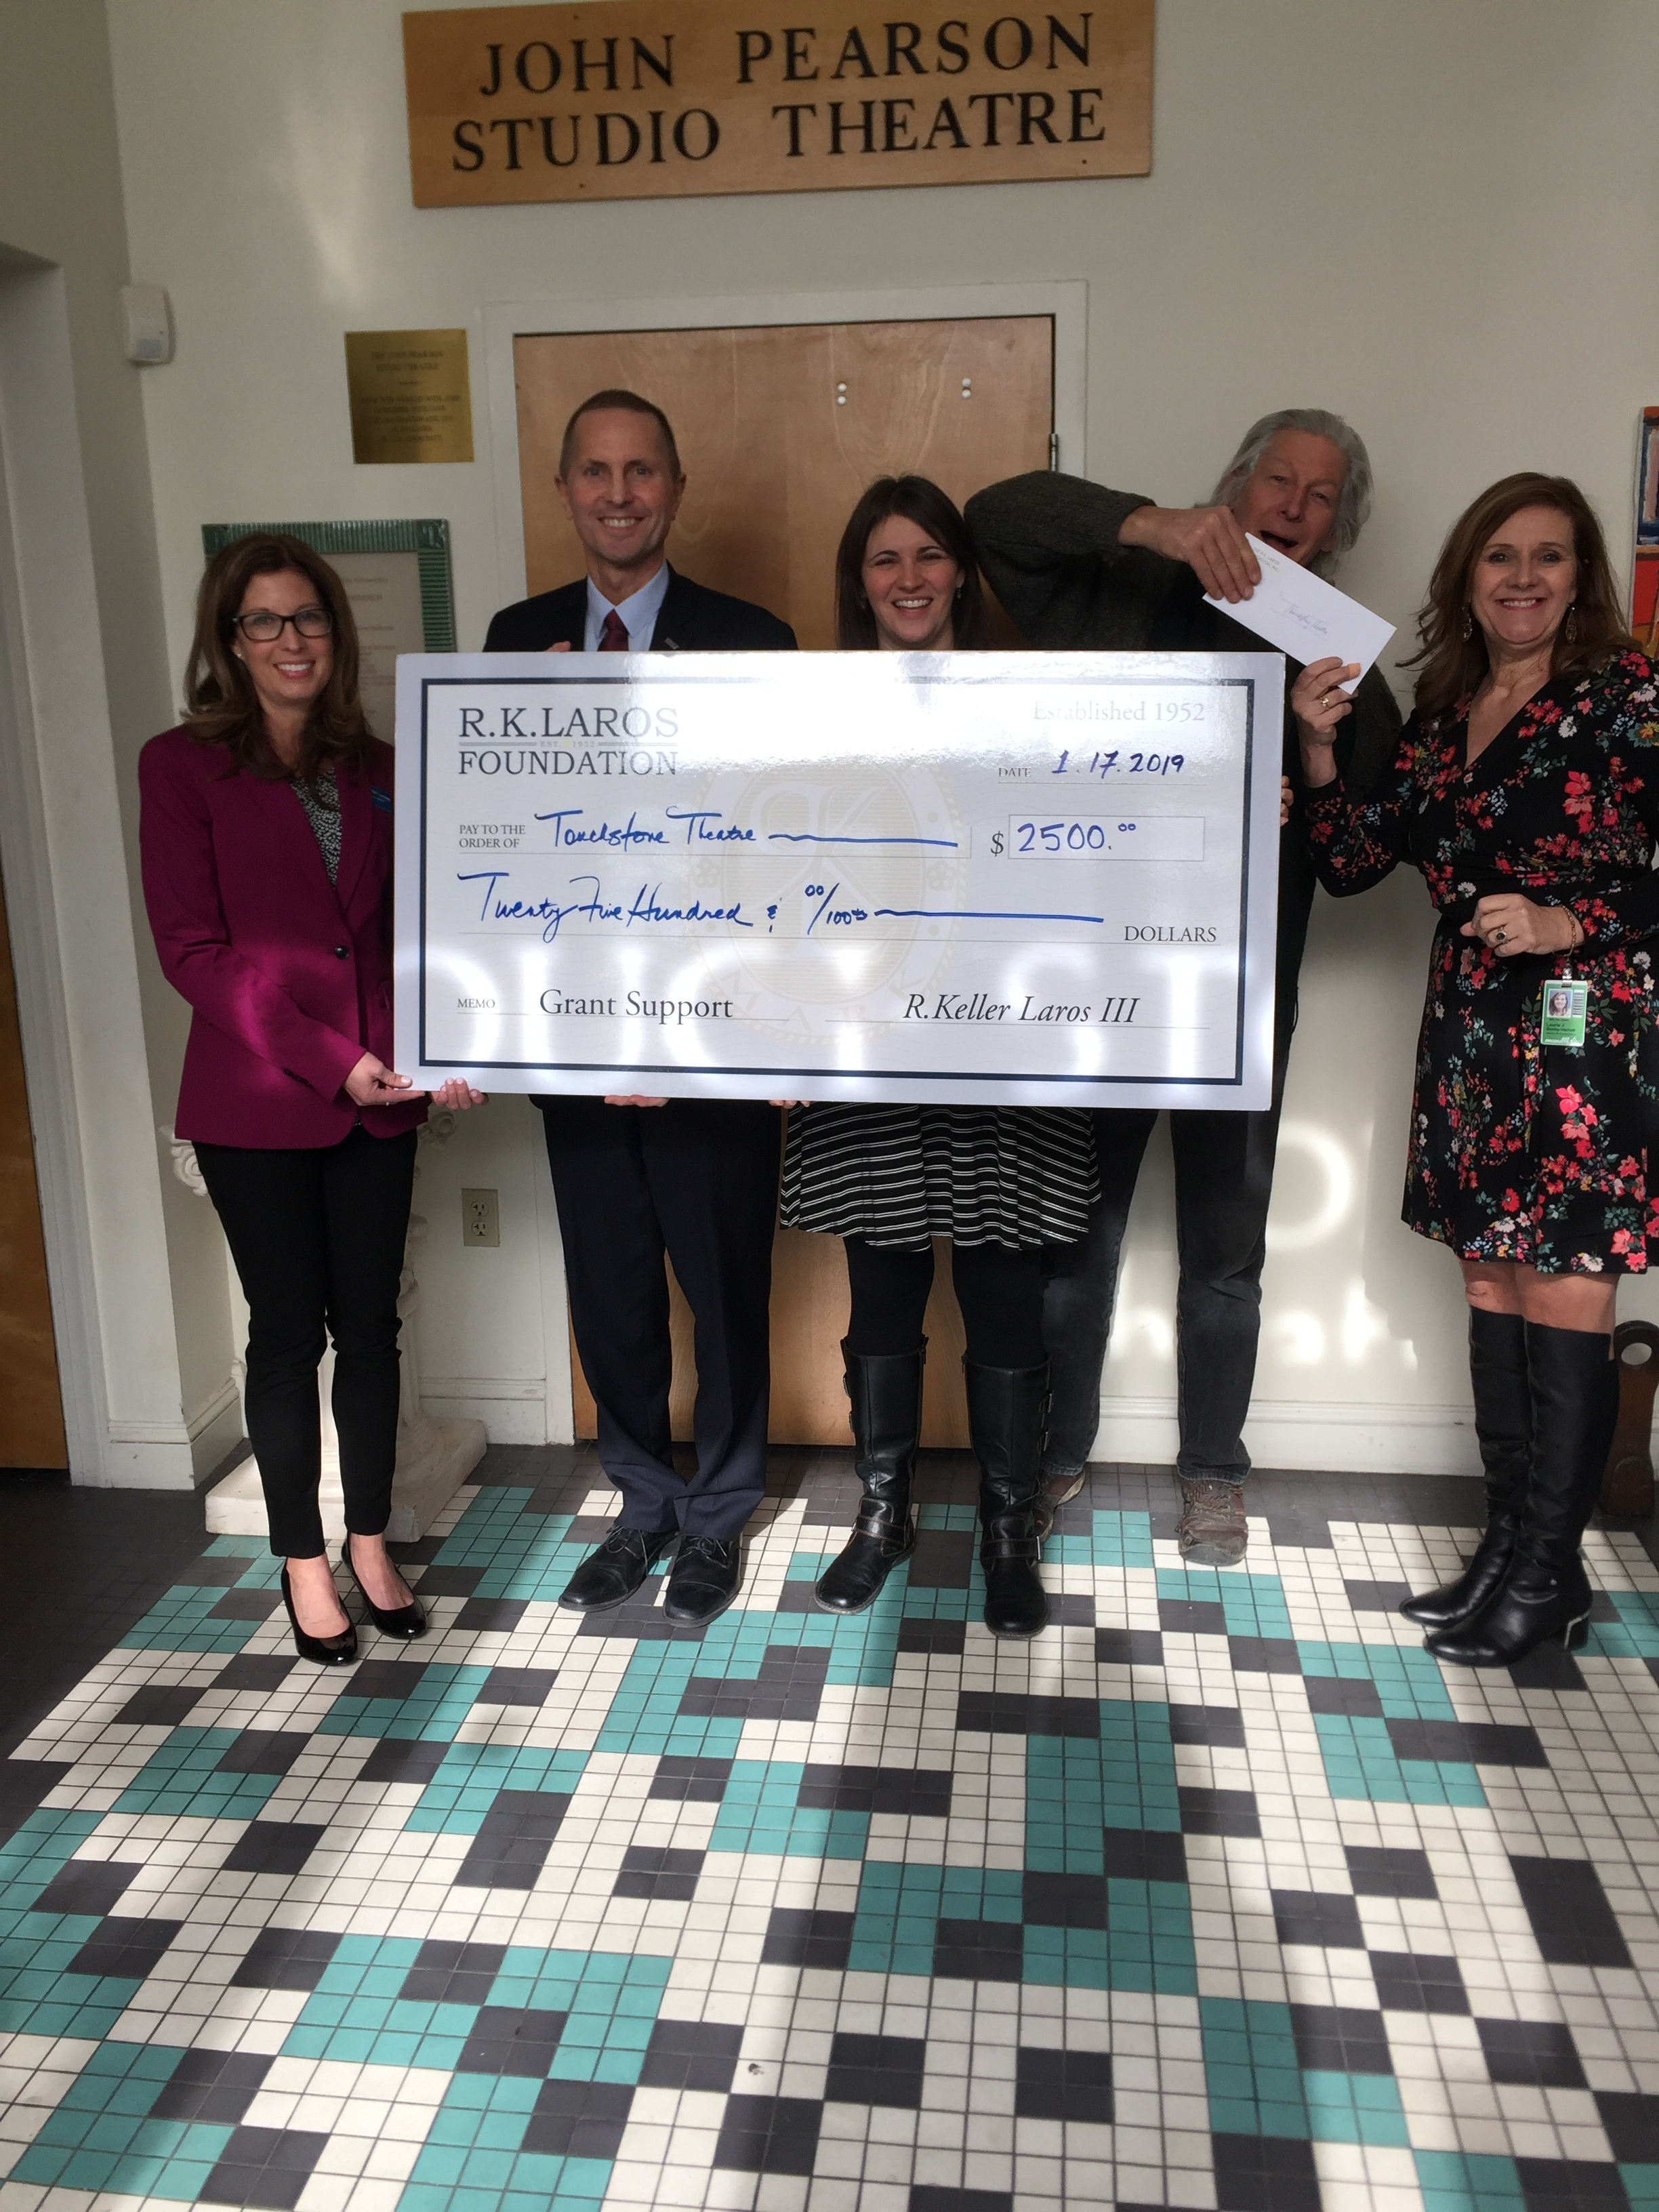 Touchstone Theatre Grant Presentation by Trustees Elizabeth Shimer Bowrers, Ron Donchez and Laurie Hackett to Artistic Director Lisa Jordan and Bill George Touchstone Co Founder on 1.17.19 to replace an aging HVAC.